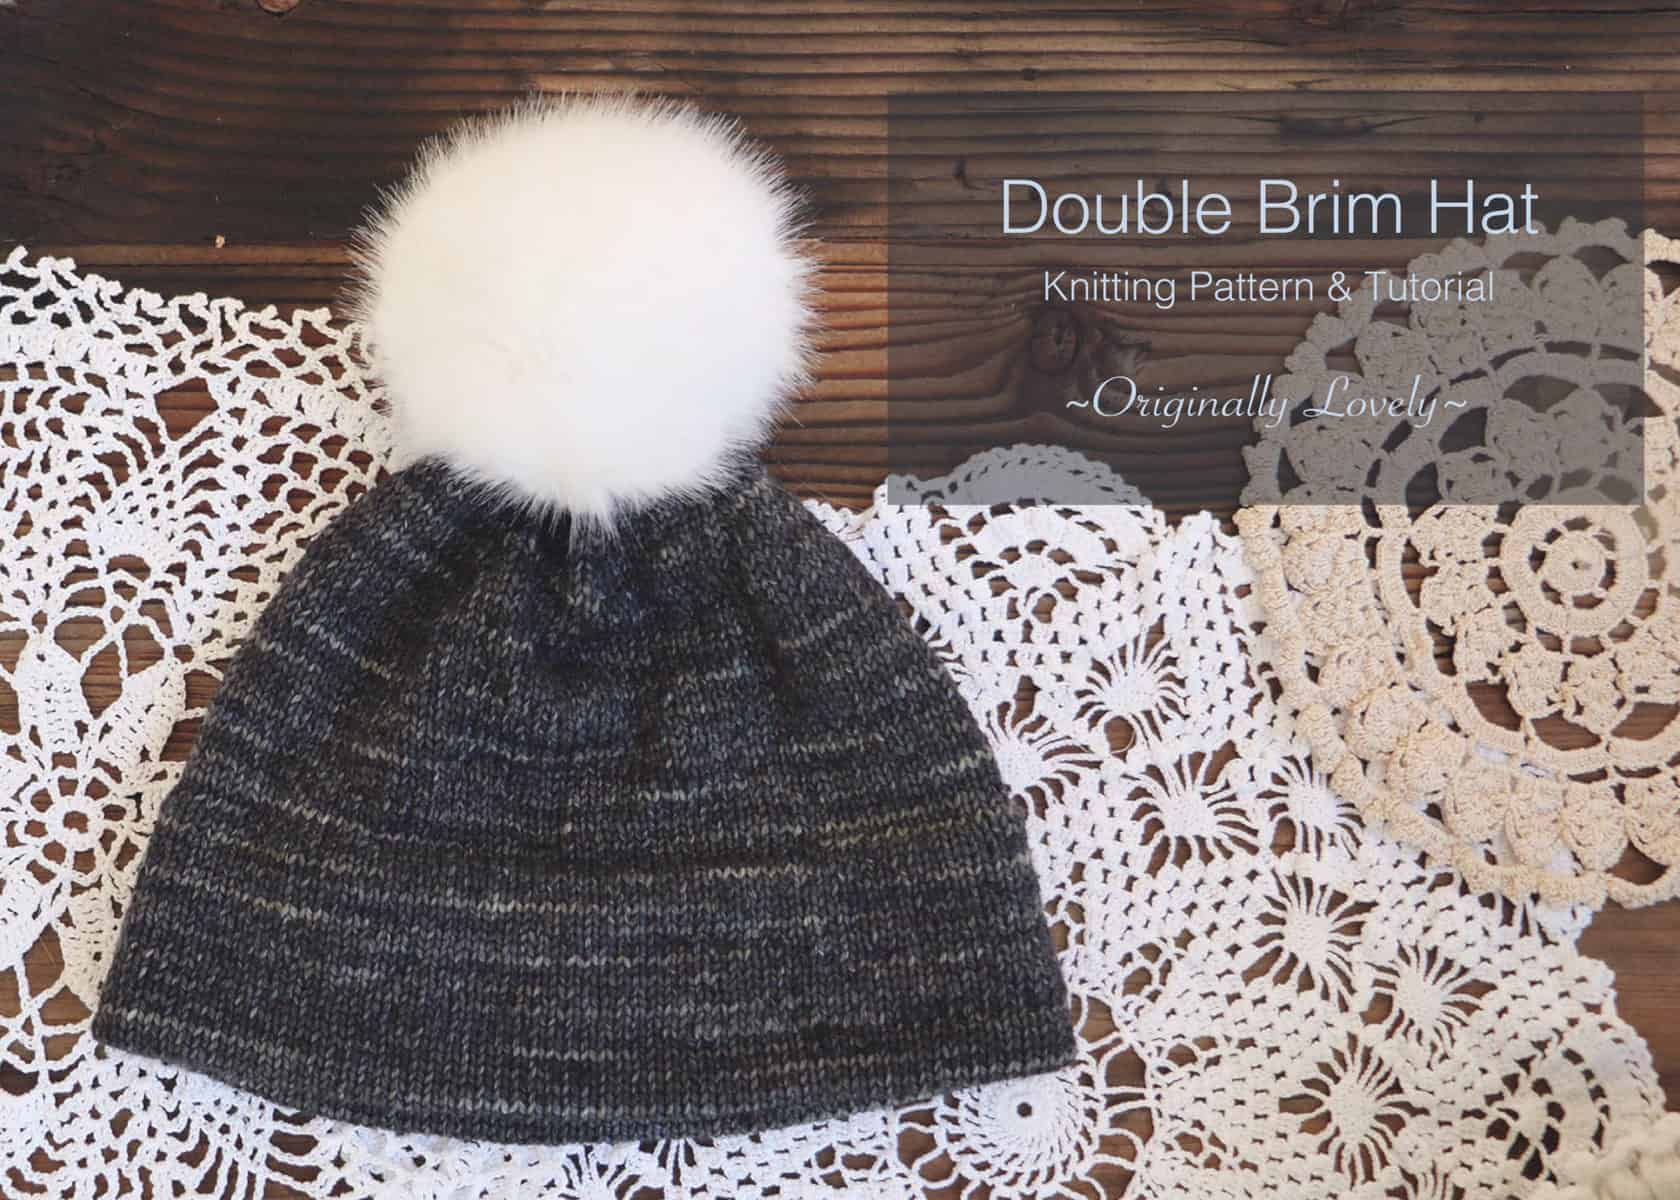 Double Brim Hat Knitting Pattern and Tutorial | Originally Lovely